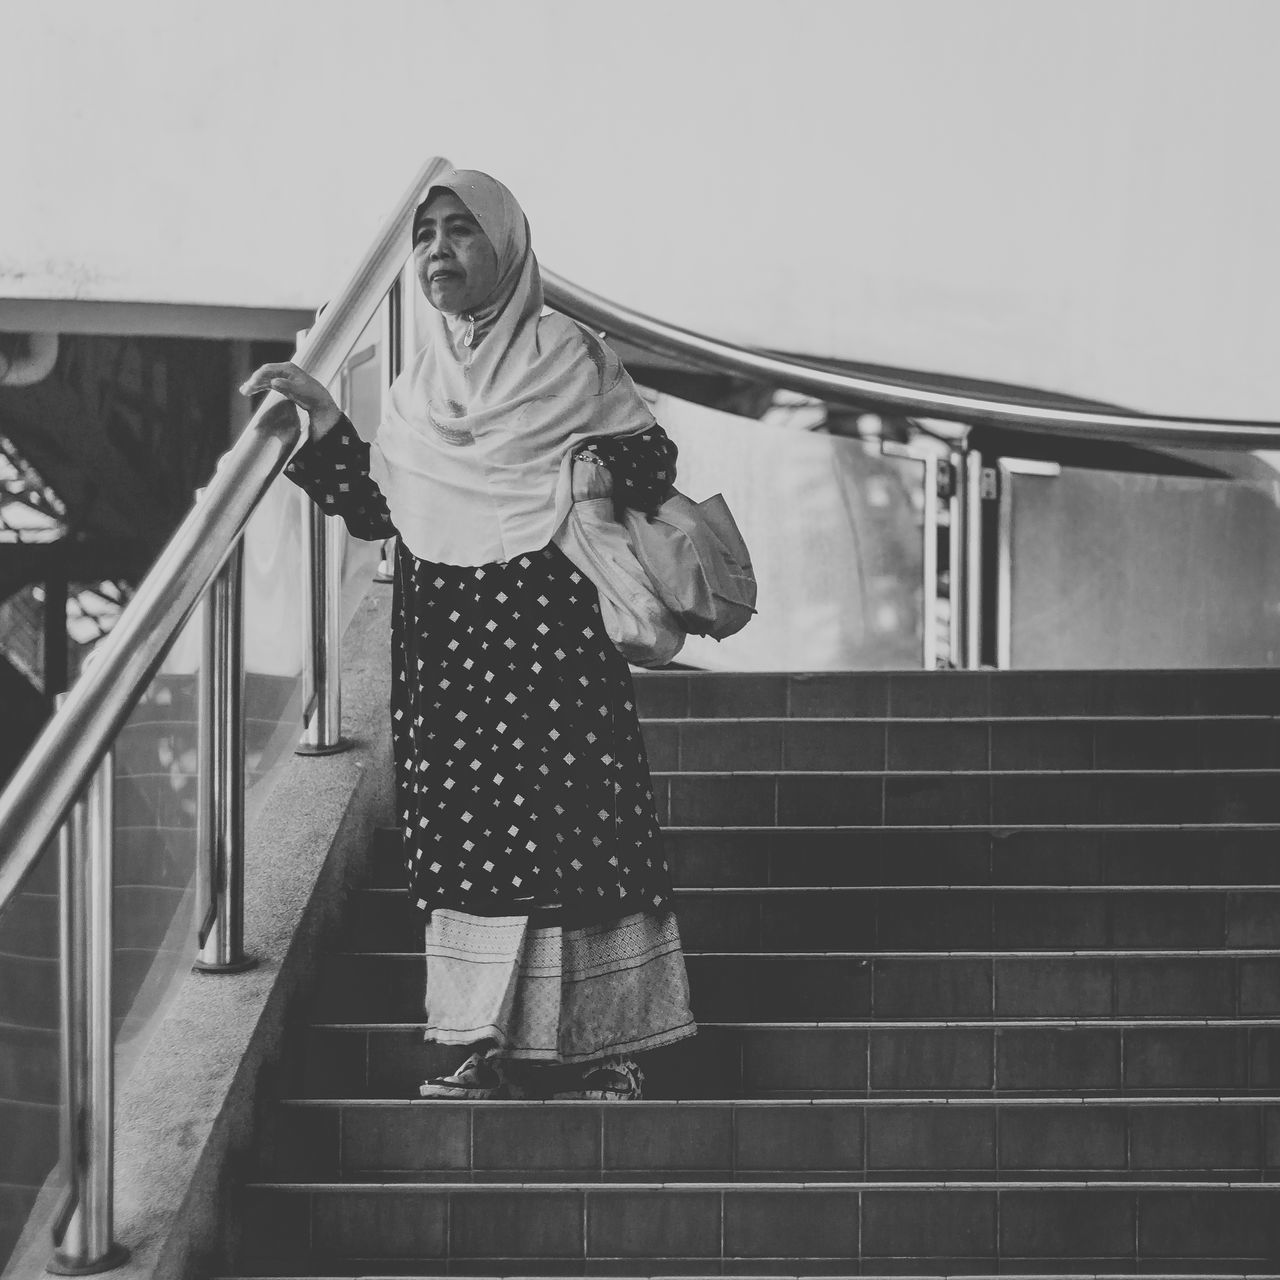 steps, staircase, railing, steps and staircases, real people, full length, lifestyles, casual clothing, standing, young women, leisure activity, low angle view, young adult, day, hand rail, indoors, people